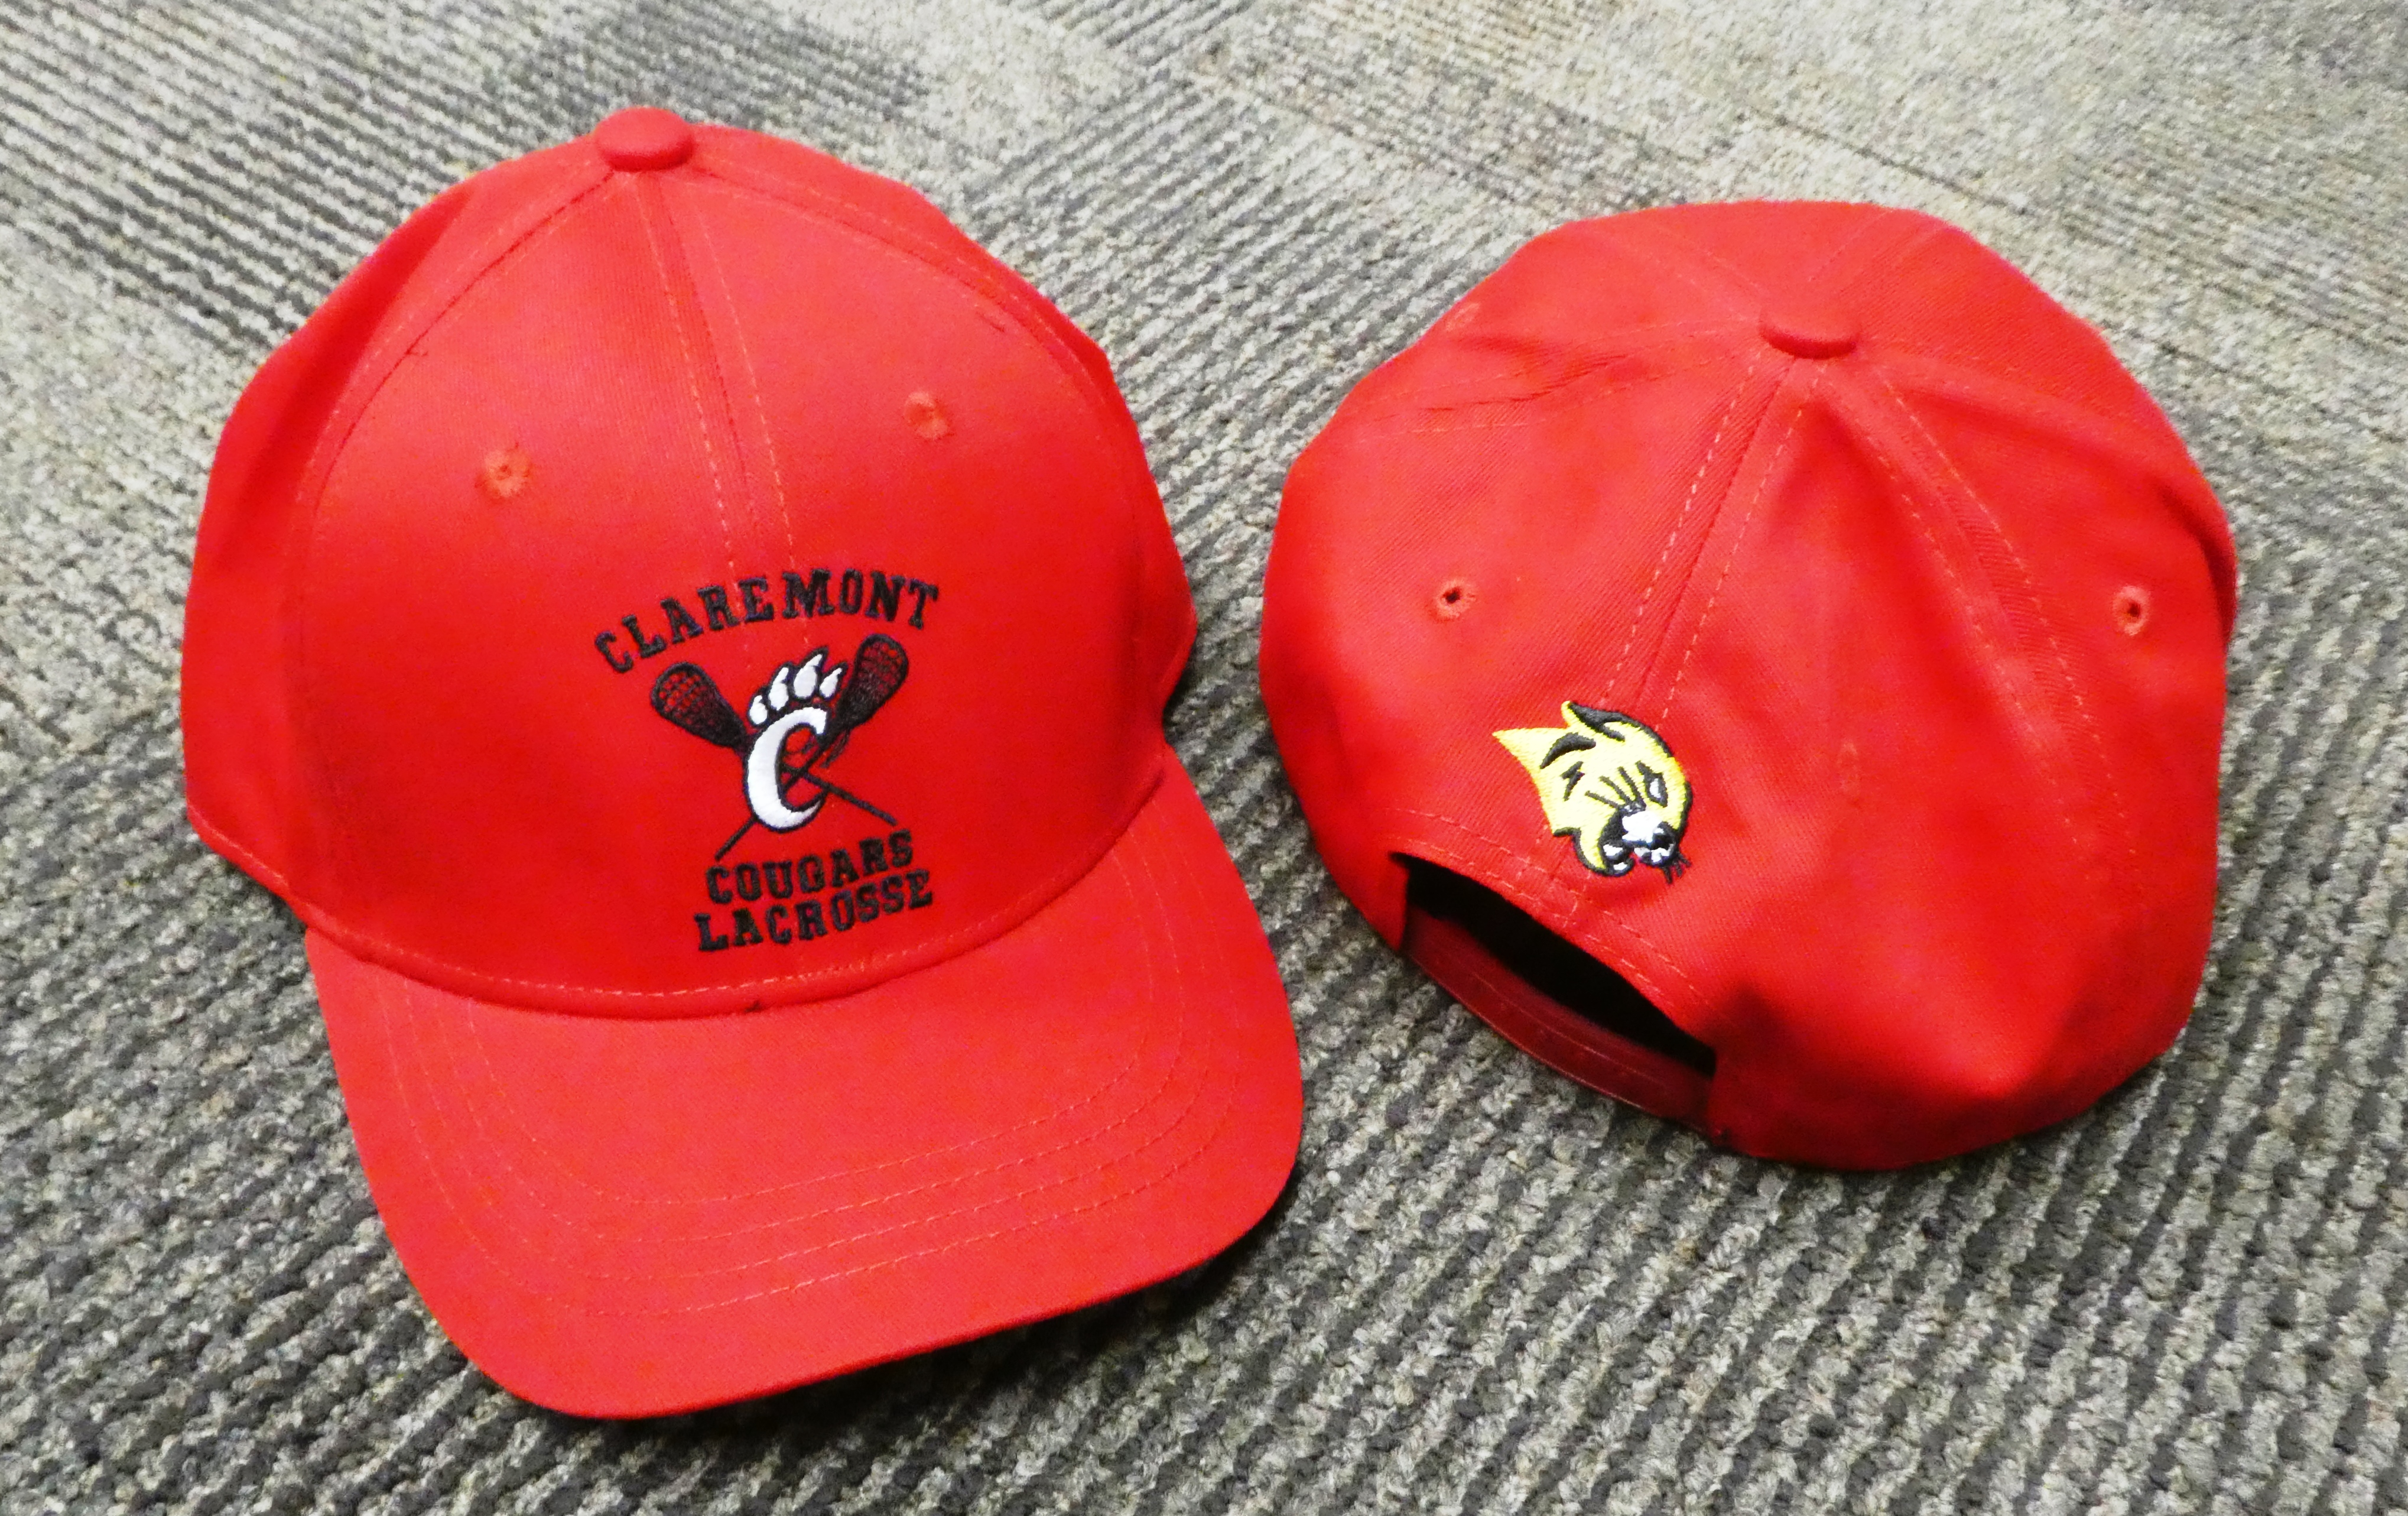 Cougar baseball cap: red with black logo